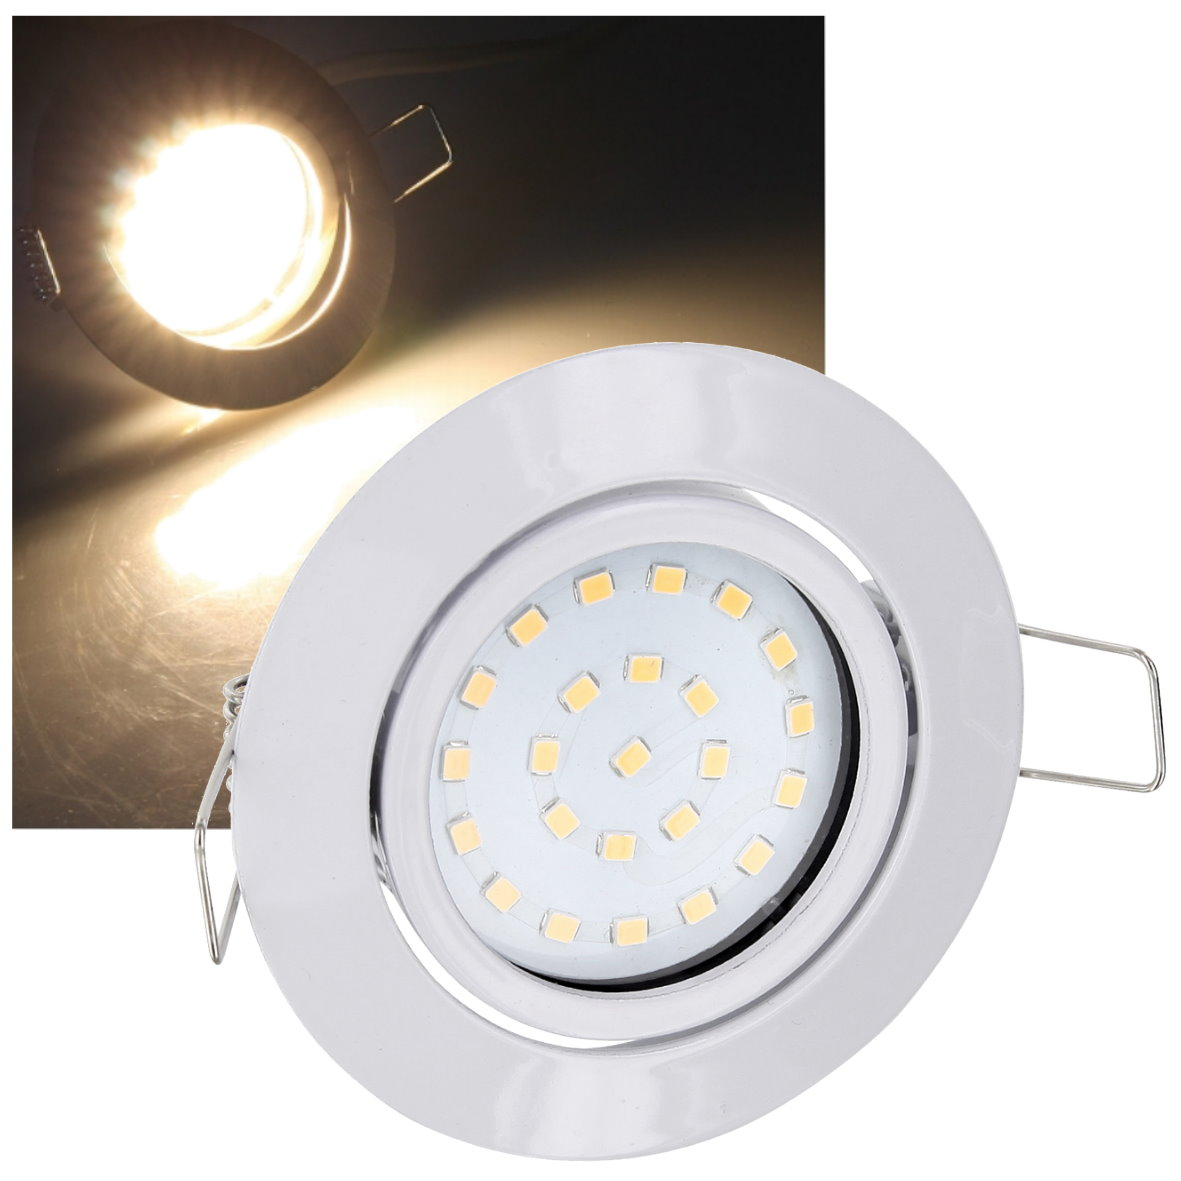 Trafo Badezimmer Beleuchtung Led Spots Ohne Trafo Einbauen Led Einbauspots Ohne Trafo